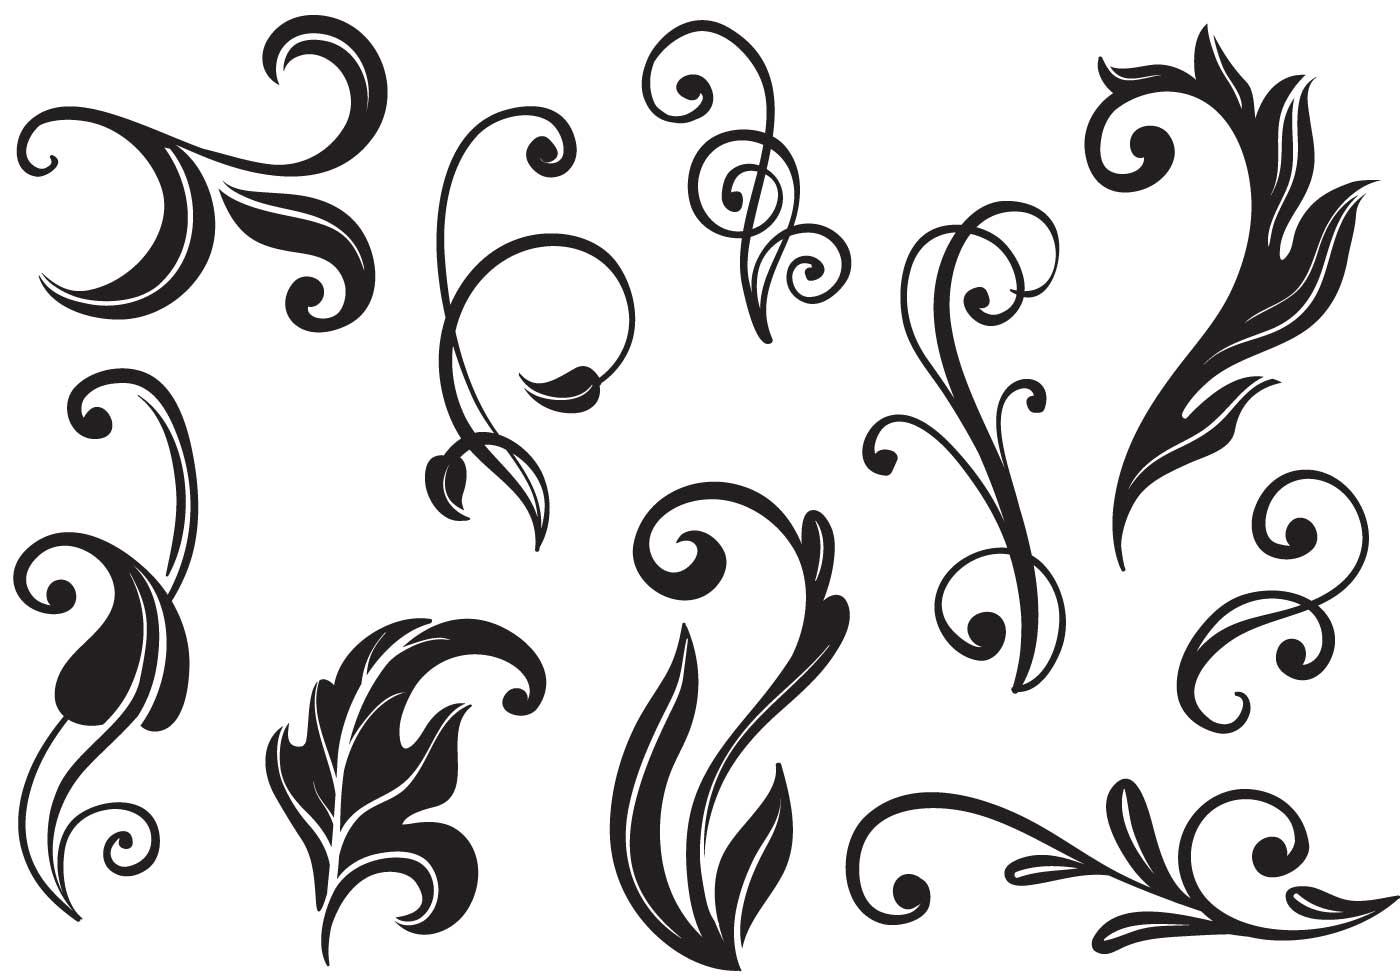 Free Flourishes II Vectors.